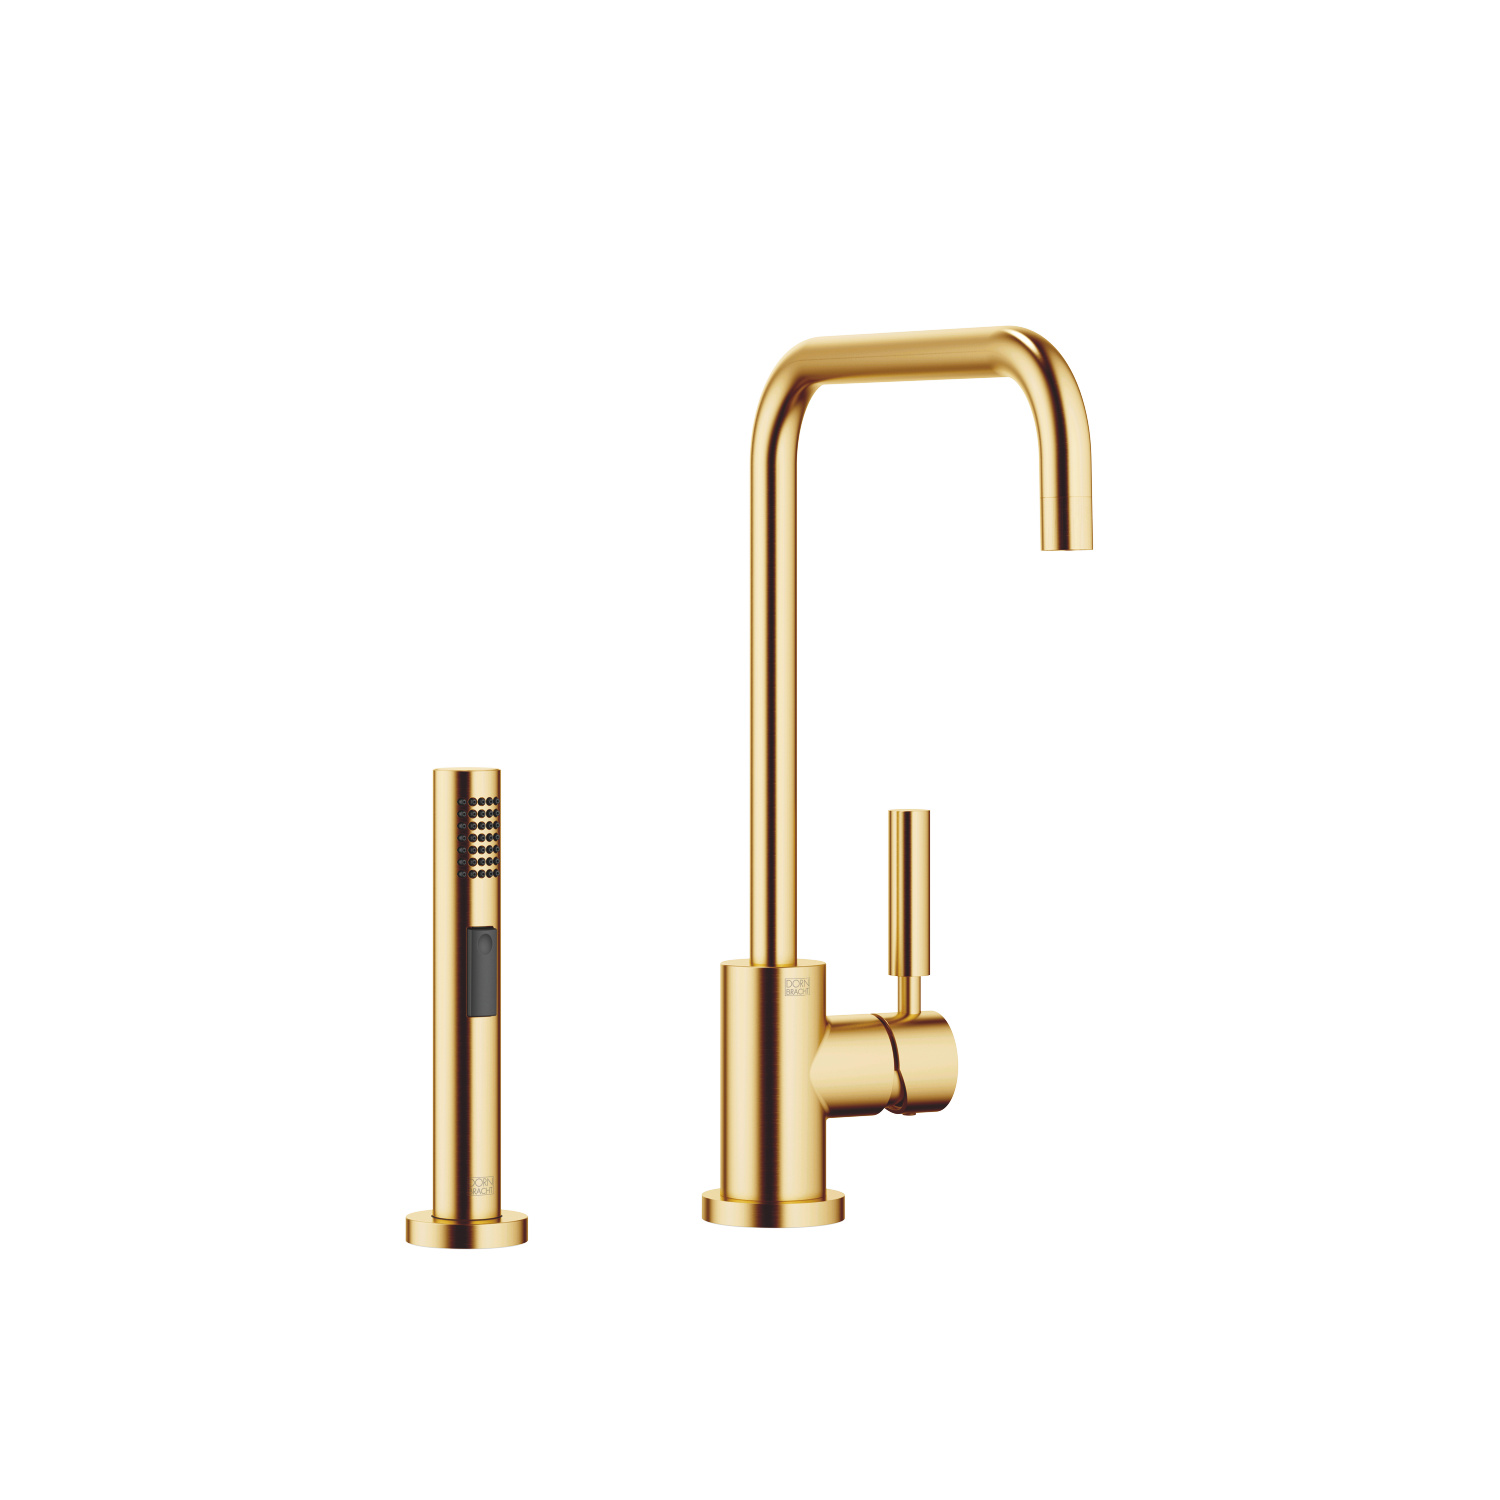 Single-lever mixer with side spray set - Brushed Durabrass - 33 820 625-28 + 27 721 970-28